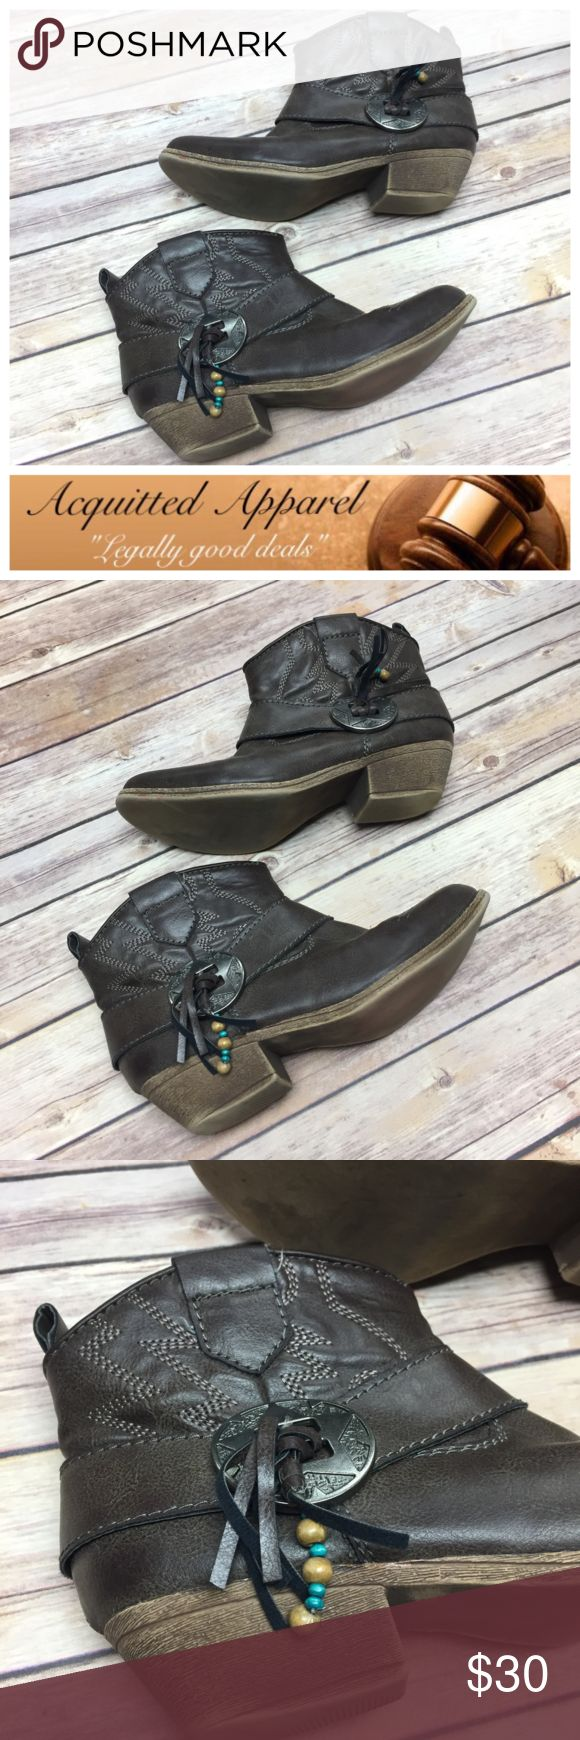 (Big Buddah) Leather Look Booties with Accents Side zip with suede and coin accents on the side sthese leather looking booties by Big Buddah are a wardrobe must for the fall. Excellent pre loved condition only a couple of minor scuffs. Big Buddha Shoes Ankle Boots & Booties